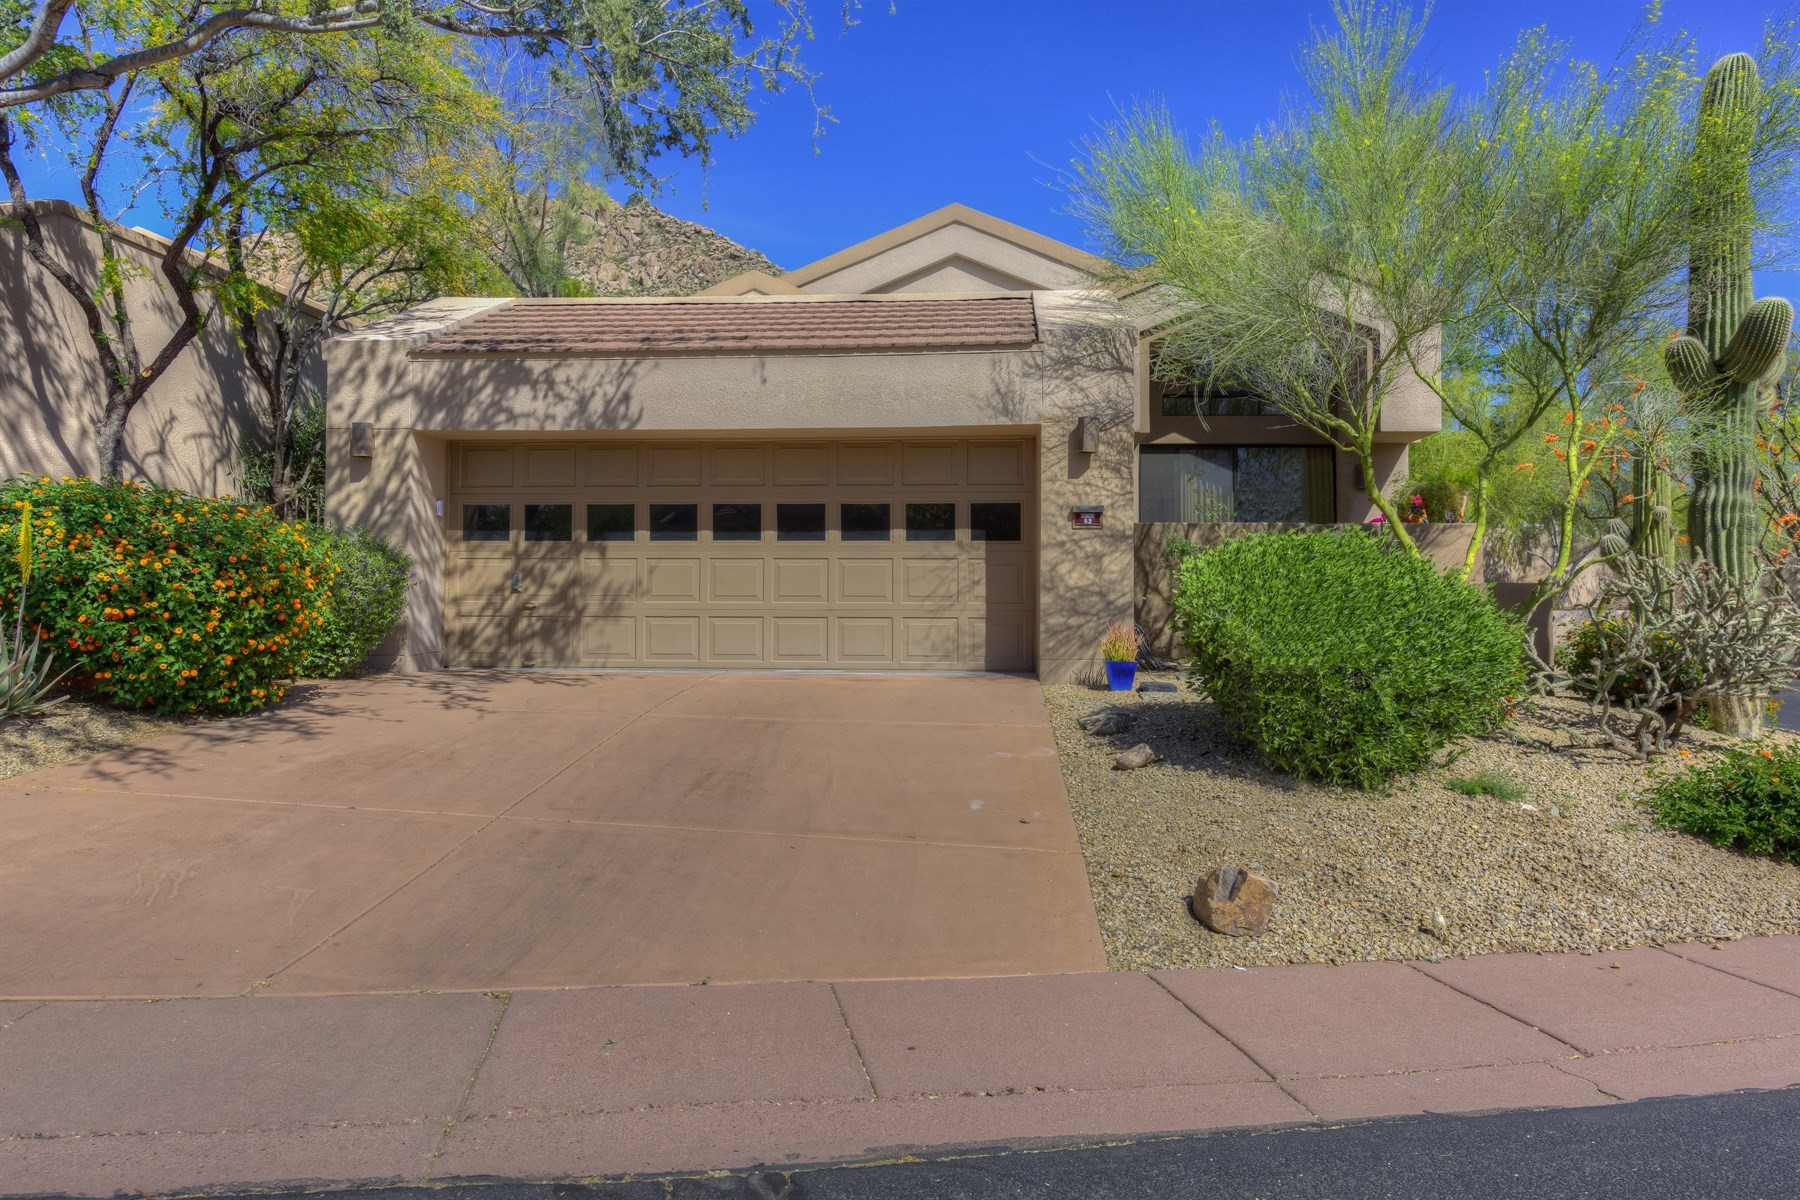 Vivienda unifamiliar por un Venta en Single-level home situated on cul de sac lot 25150 N WINDY WALK DR 63 Scottsdale, Arizona, 85255 Estados Unidos